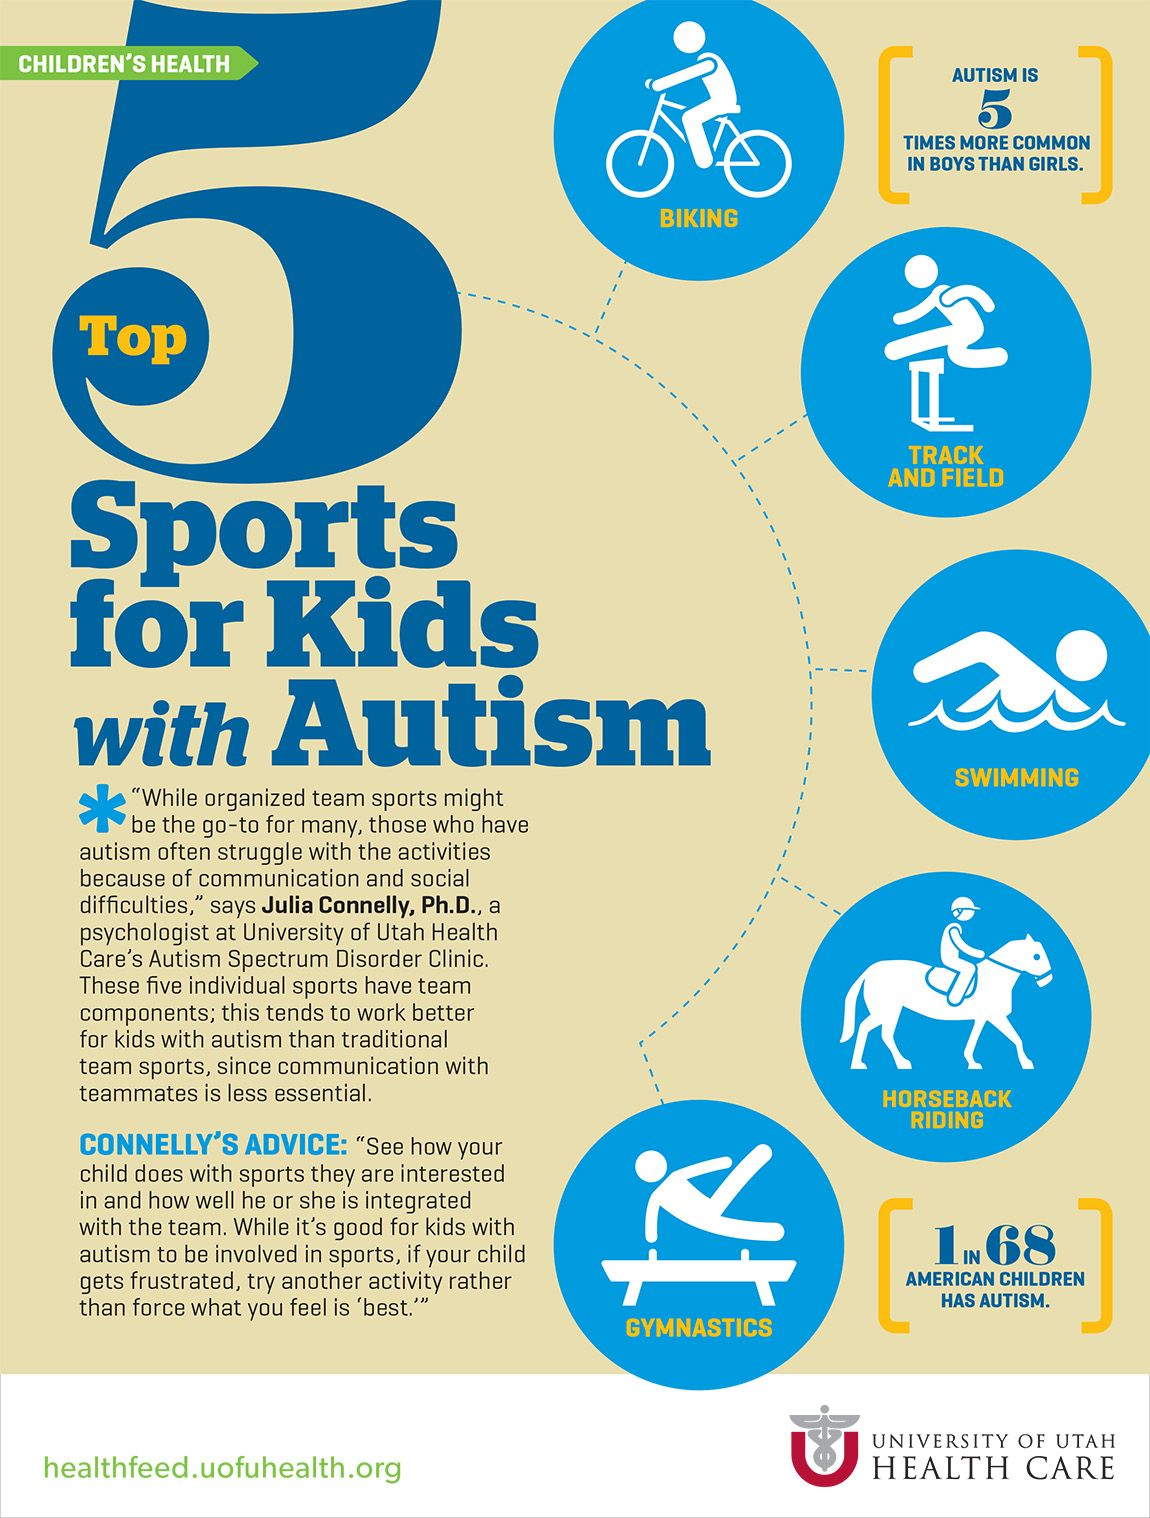 Children With Autism May Struggle With Sports Here Are Some